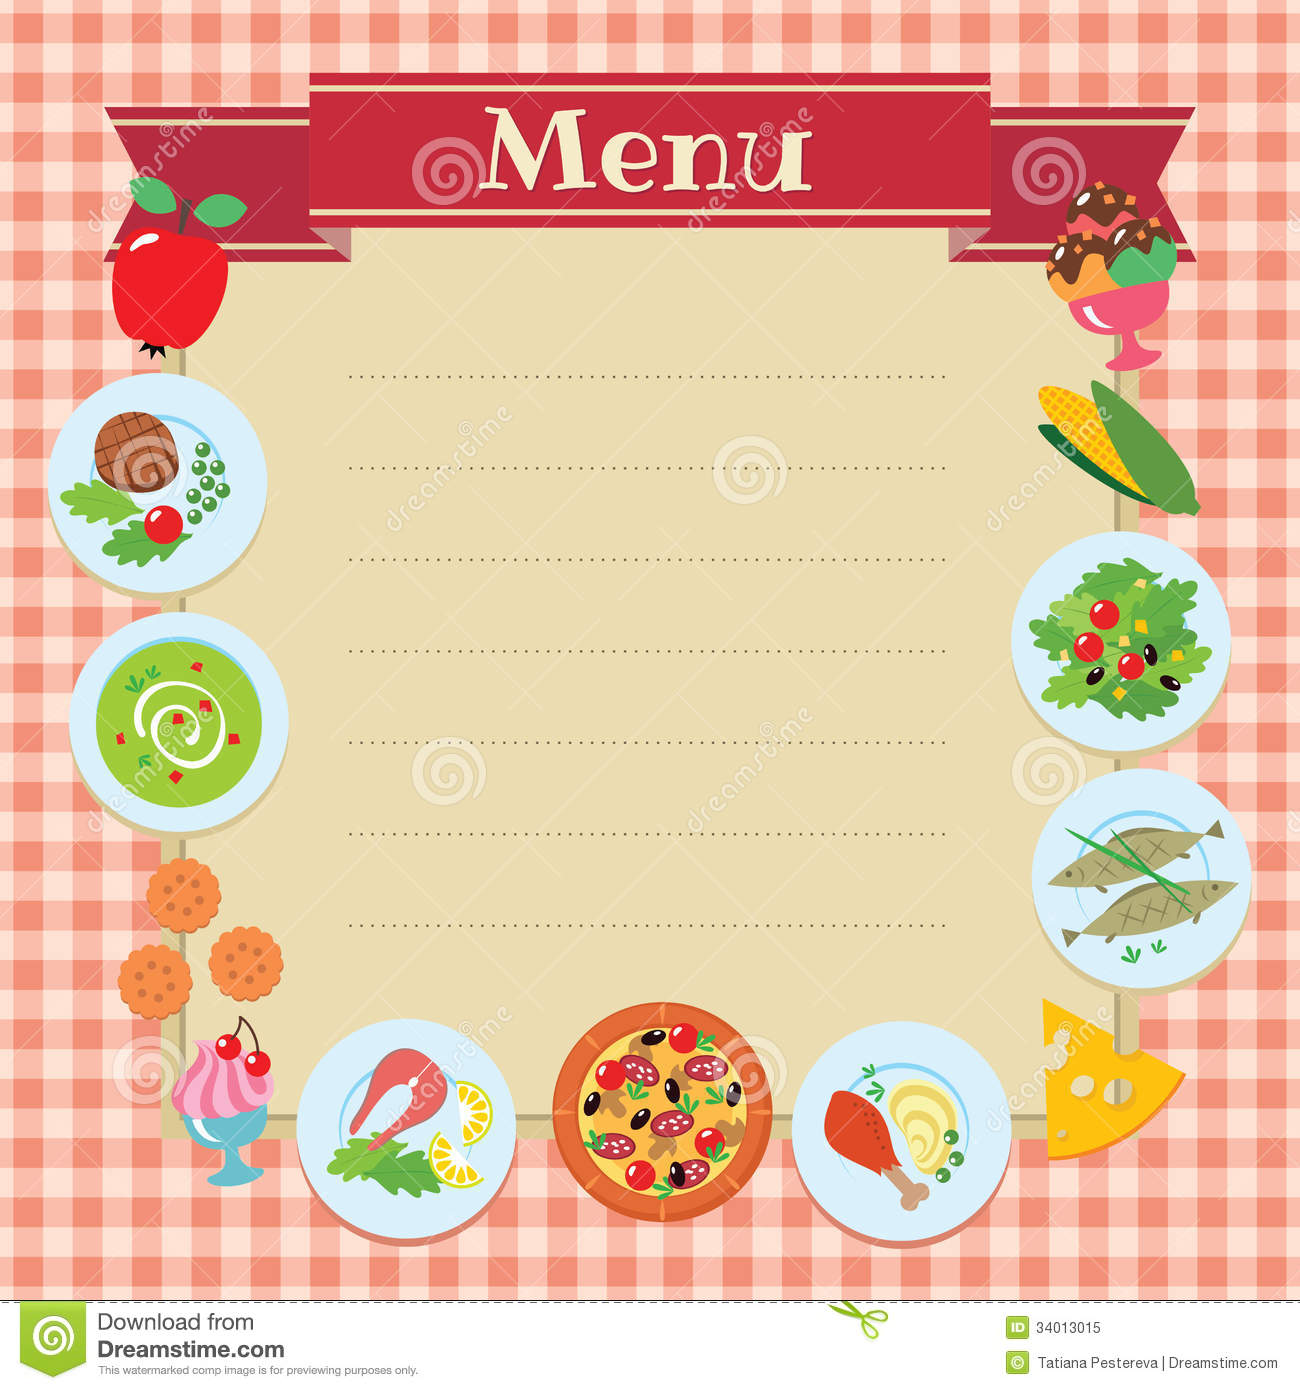 Lunch Menu Template make voucher – Lunch Menu Template